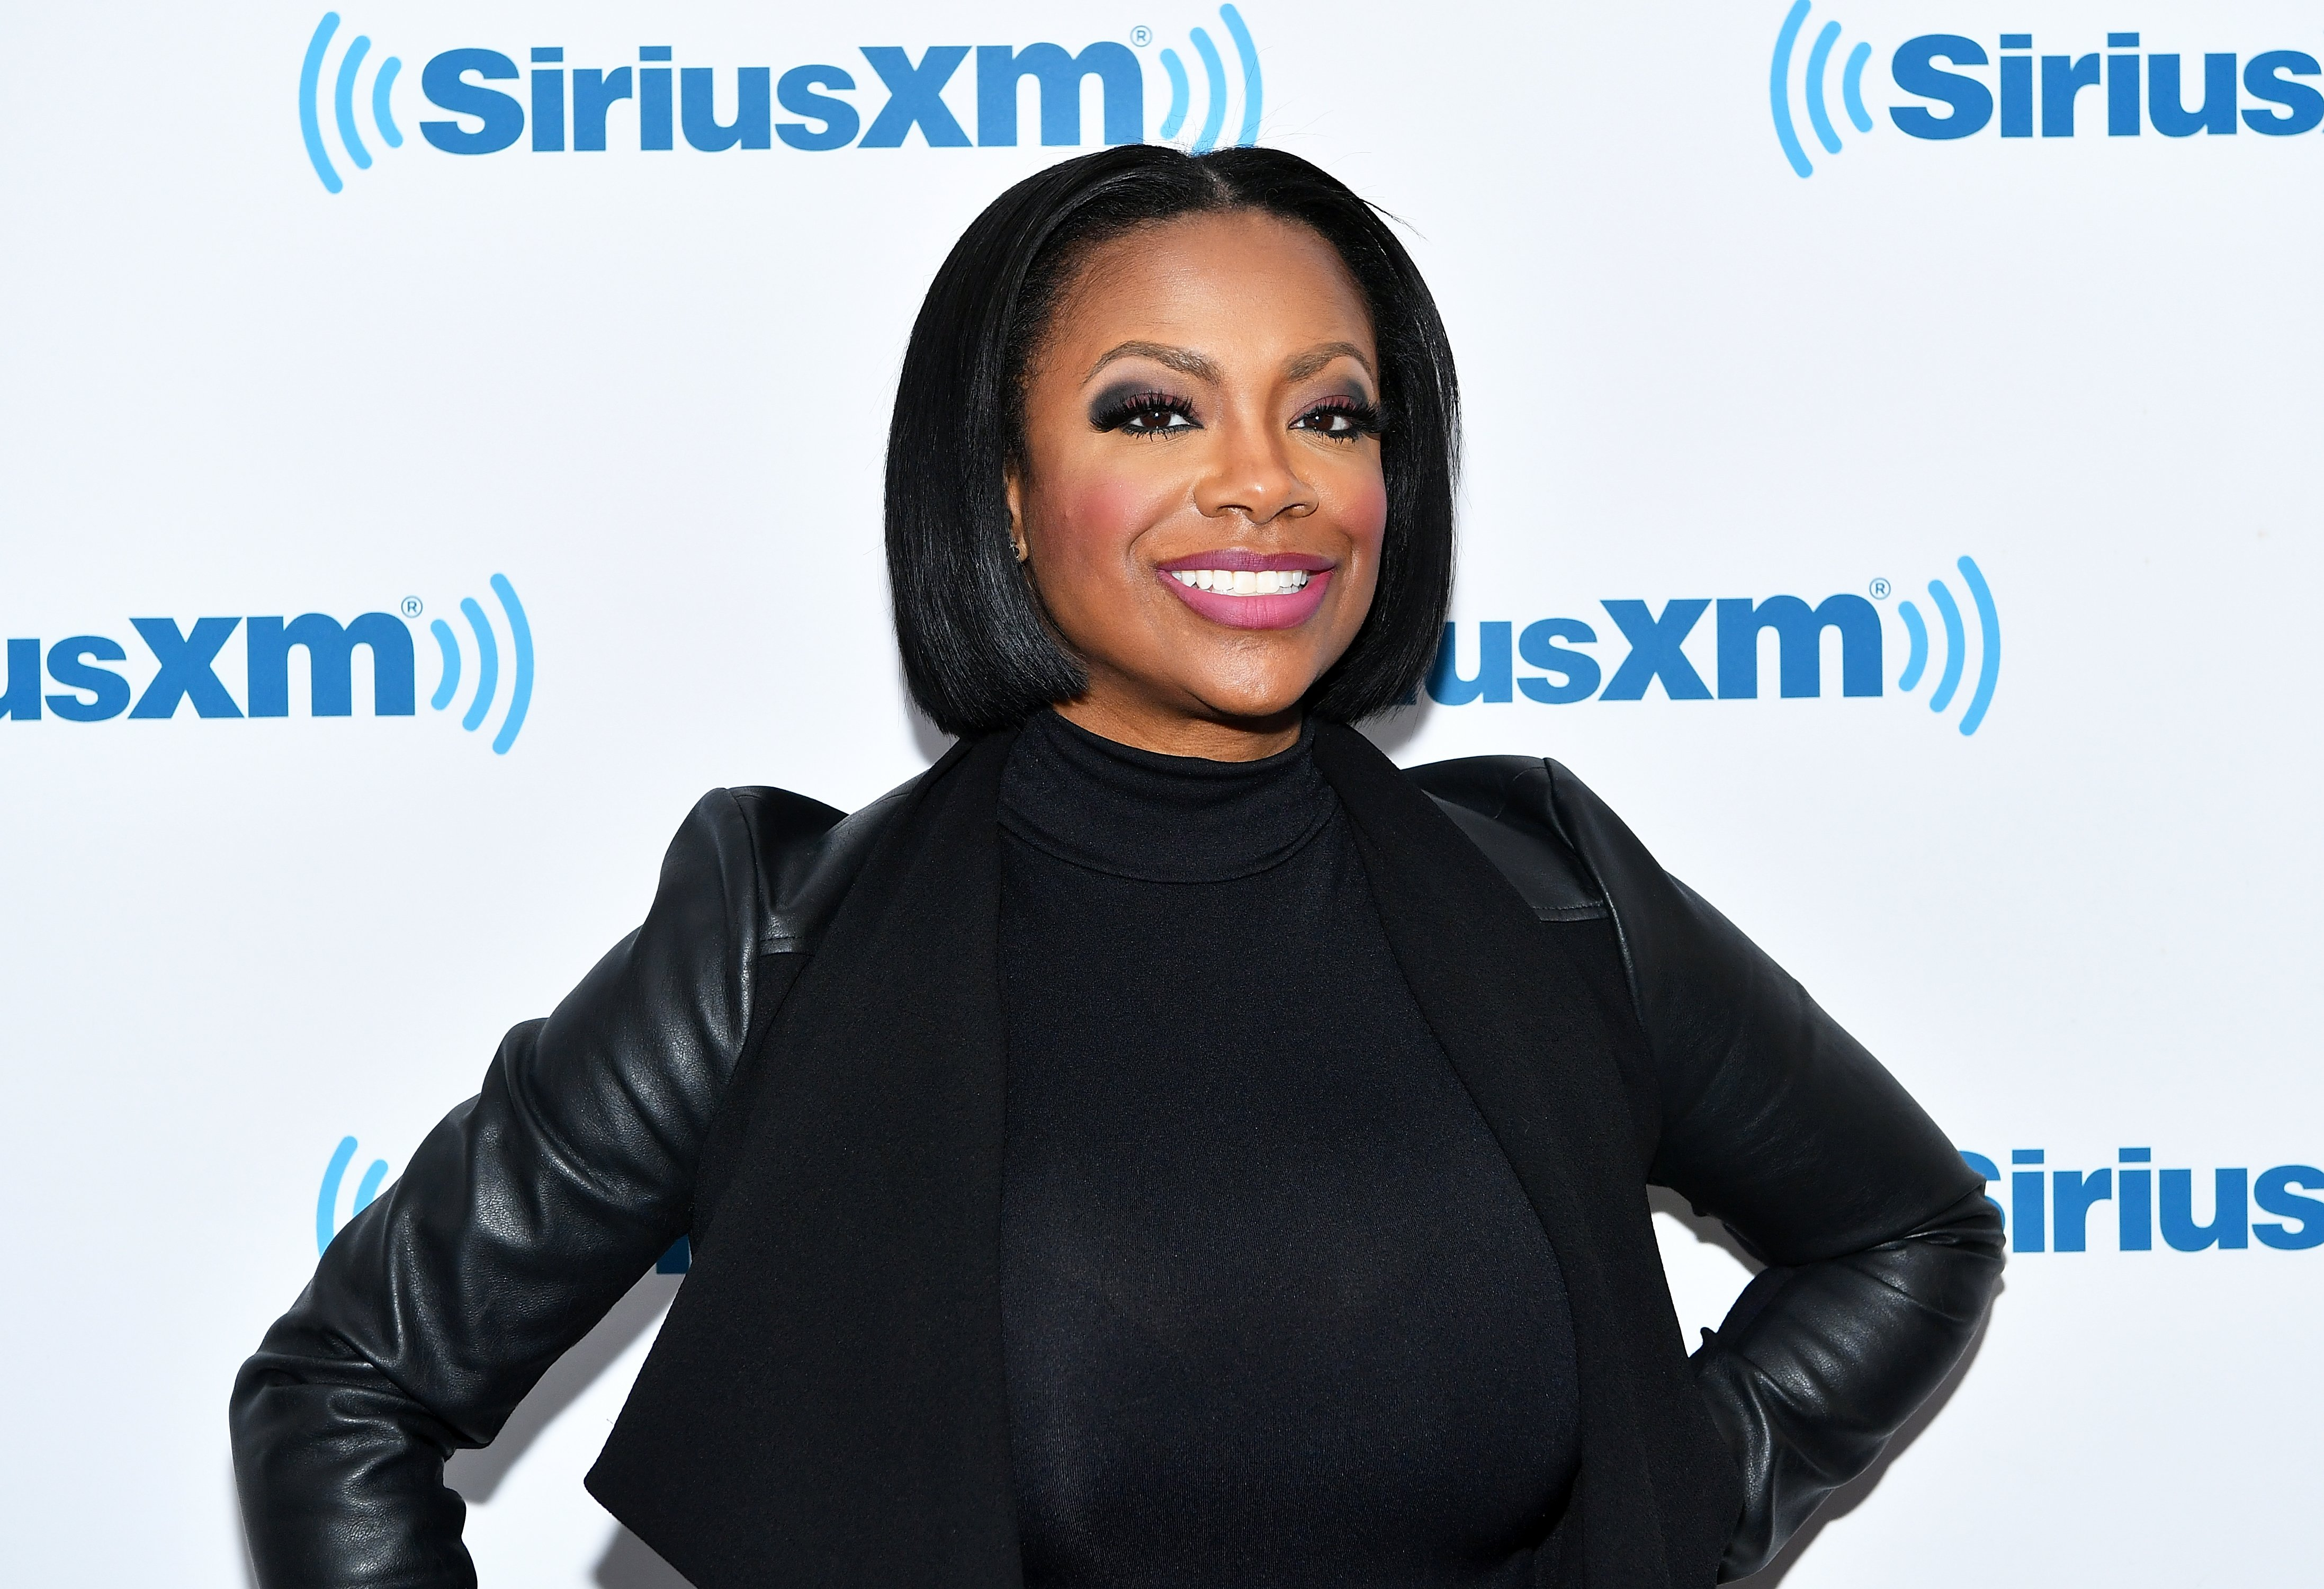 Kandi Burruss at the SiriusXM Studios on March 5, 2018 in New York City | Photo: Getty Images